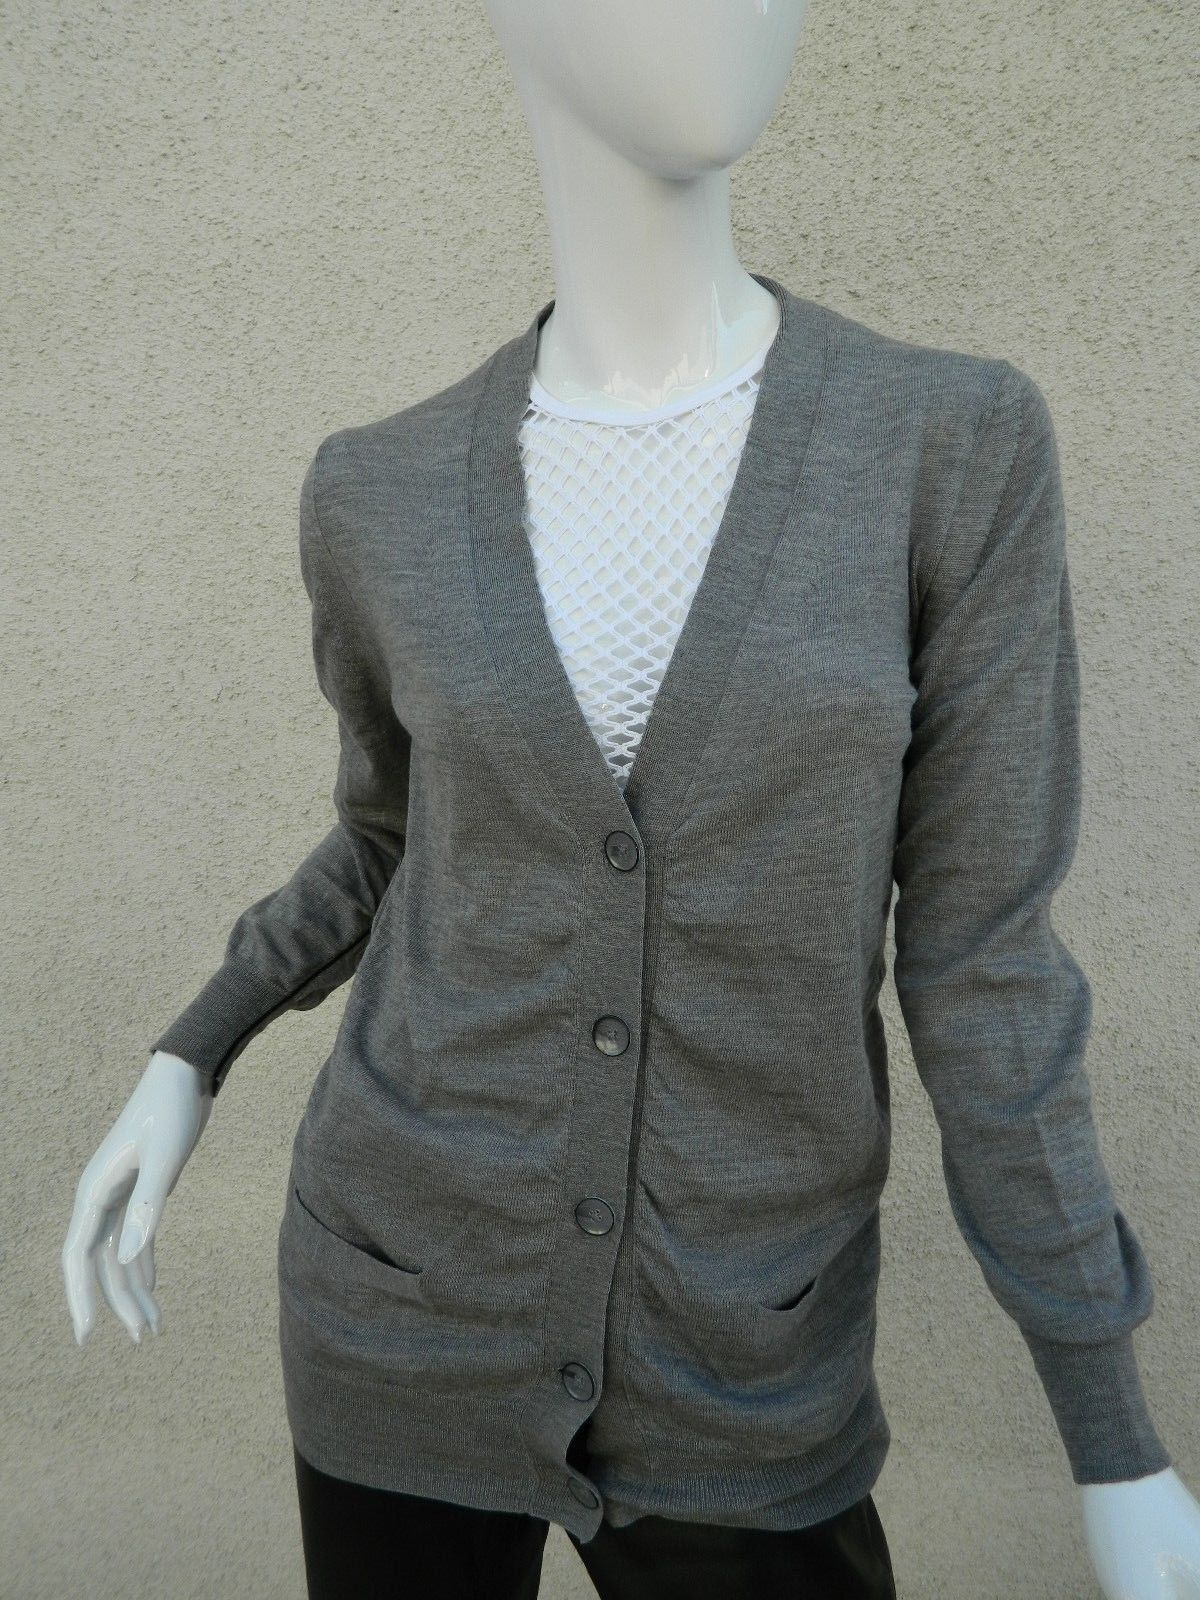 Primary image for 3.1 Phillip Lim Cardigan Sweater Gray with Black Pipping 100% Merino Wool Sz S